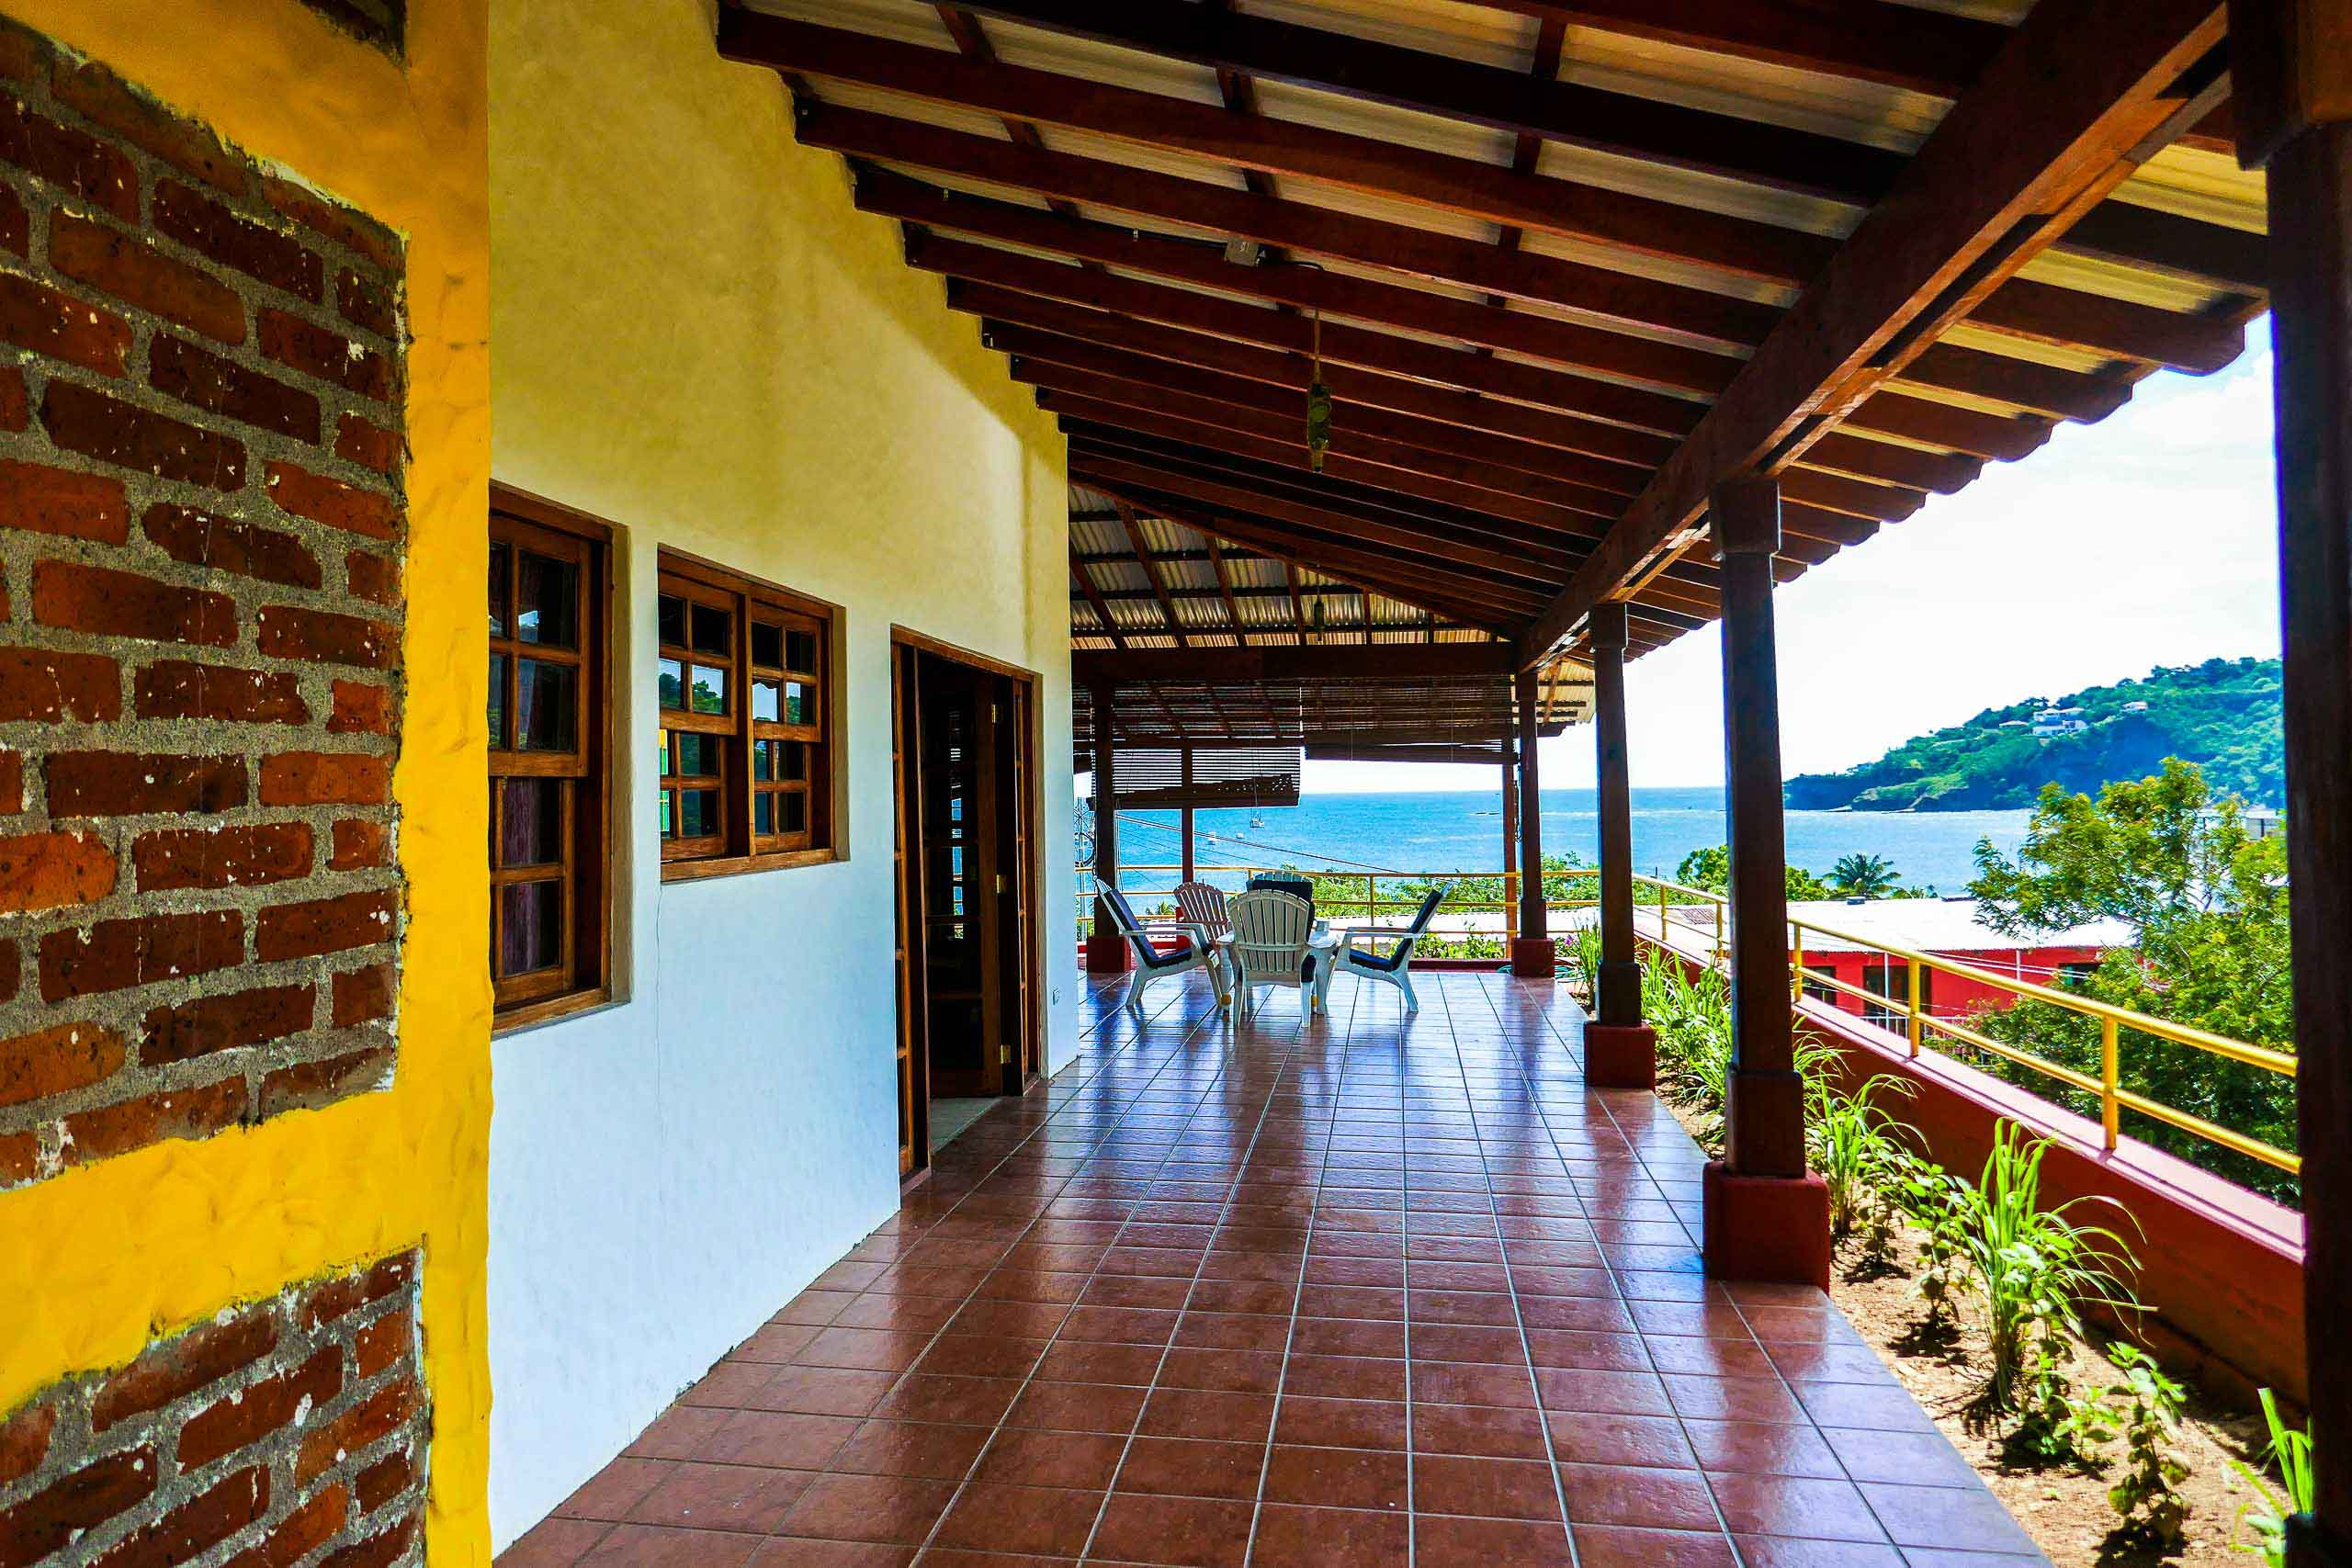 Casa Oro Group Casa-Ruth-San-Juan-del-Sur-Nicaragua-Patio-Ocean-View-Beach-Group-Eco-Tourism Casa Ruth